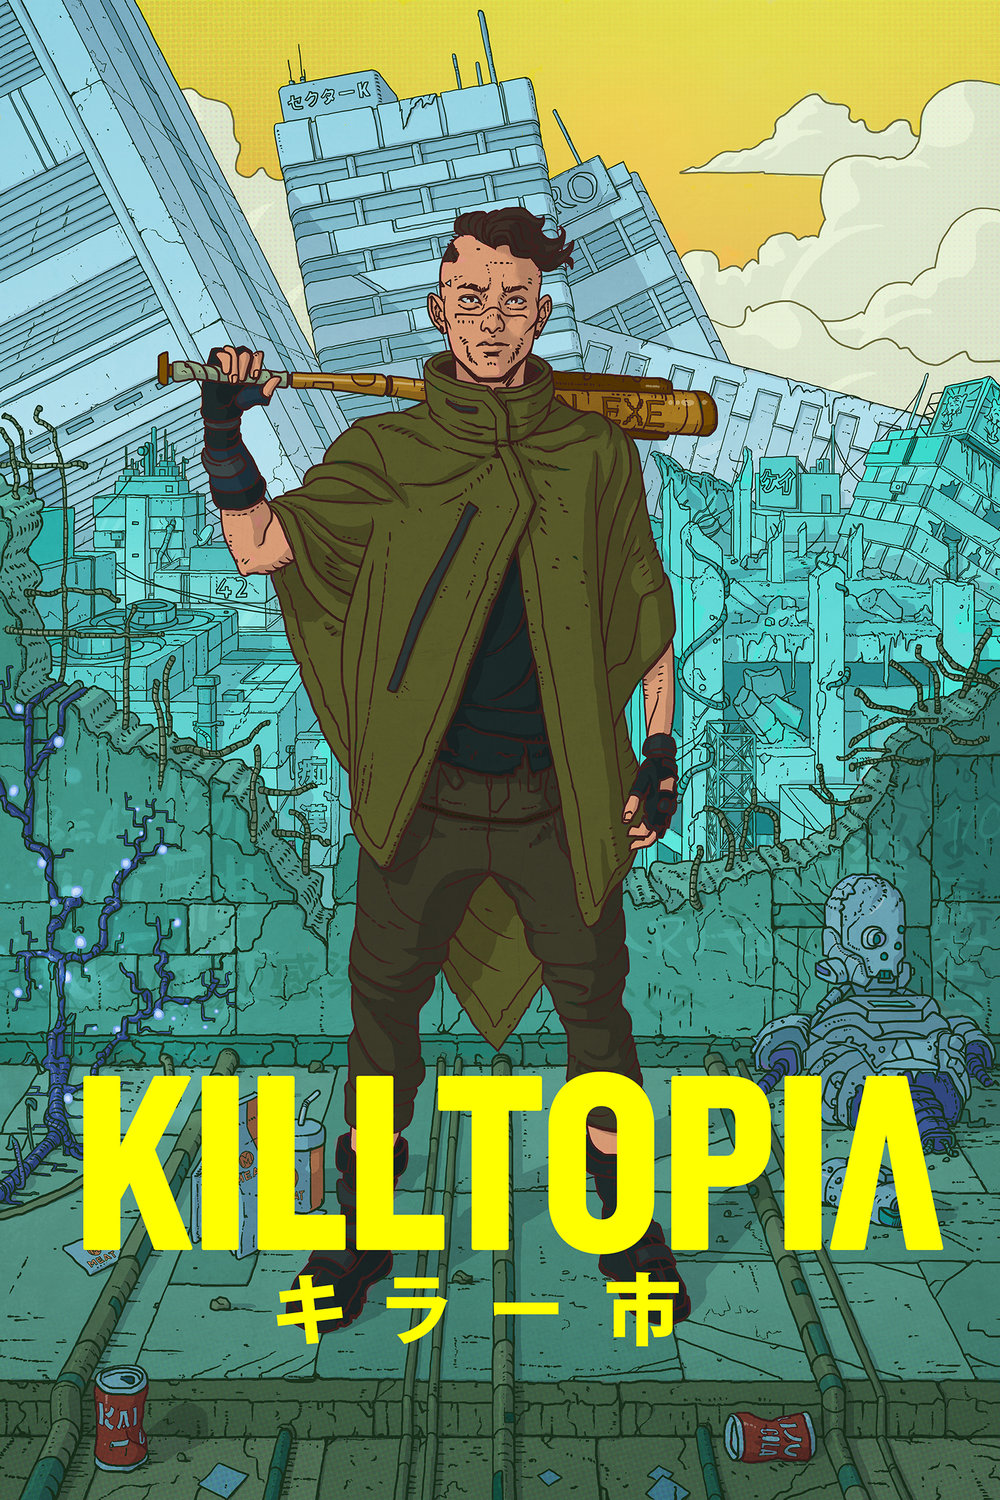 BHP Comics To Publish KILLTOPIA - BHP Comics are pleased to announce that they will be publishing Kickstarter success story KILLTOPIA by Dave Cook and Craig Paton. KILLTOPIA, a neon cyberpunk fantasy set in dystopian Japan,  attracted nearly 900 backers on Kickstarter, reaching over four times their intended target. Killtopia is a cyberpunk graphic novel series set in a mega-city in future Japan, where heavily-armed Wreckers hunt rogue mechs for money, fame and glory. Killtopia follows rookie Wrecker Shinji and Crash, the world's first sentient mech, as they are hunted as fugitives across the neon-soaked metropolis by Wreckers, android killers and Yakuza gangs. Shinji wants to save his sister. Crash wants to be more than a machine. They both want to make it out alive. Killtopia brings together influences from Manga, Japanese gaming and western comics, making a bright, punchy cyberpunk with a very human story. Dave Cook, KILLTOPIA's writer is thrilled with how the team has fallen into place: 'Killtopia is our first series as writer and artist, while the addition of letterer Rob Jones has made for something of a dream team. I think cyberpunk fans and comic readers in general are going to love what we're making!' KILLTOPIA'S artist, Craig Paton, is keen to reach a wider audience: 'What excited me most about joining BHP Comics is that, as well as allowing us to get our work out to a much bigger audience, it's very cool to be part of something promoting Scottish art and talent to the wider world. ' 'We couldn't be more excited to join the BHP family for many reasons; one of those being that they are a fellow Scottish outfit,'  Says Cook, 'It means a lot to us that we can take our first step as published creators and help fly the flag for Scotland's ever-expanding comic industry.''Killtopia captures the  readers appitite for genre based sci-fi books and it immediately caught our attention,' says Sha Nazir, BHP Comics' Publisher, 'This is the first time BHP have acquired a book funded by Kickstater and we are really pleased to add to the books success by increasing its visibility through the book industry and excited to bring this new world to our readers in September.'